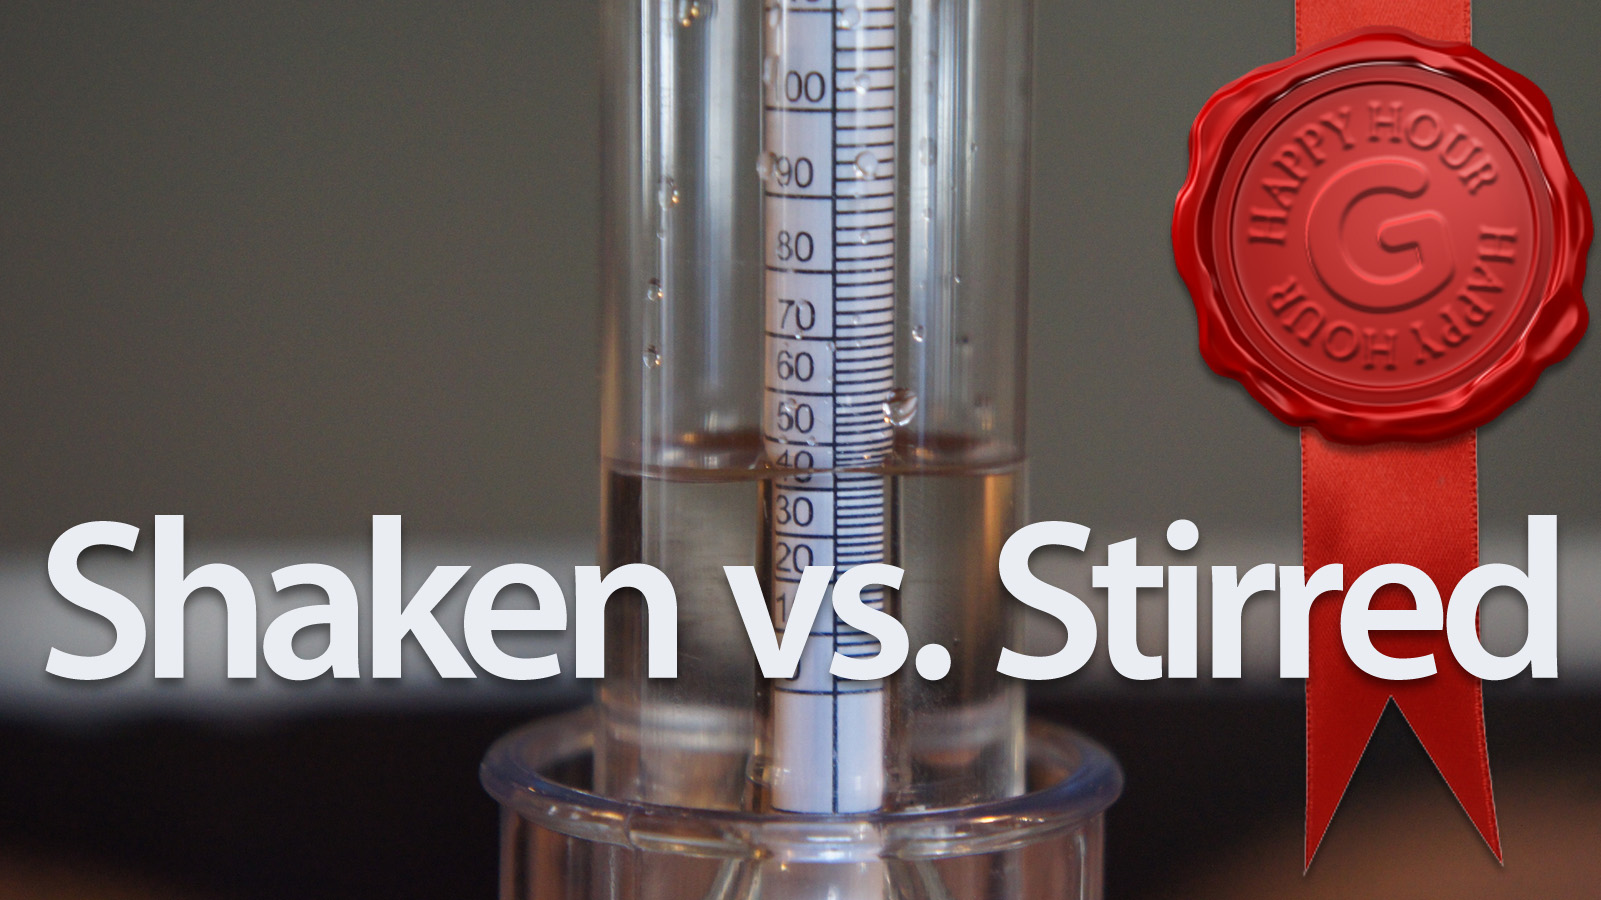 Click here to read Shaken or Stirred: Which Gets You Drunker? A Scientific Exploration